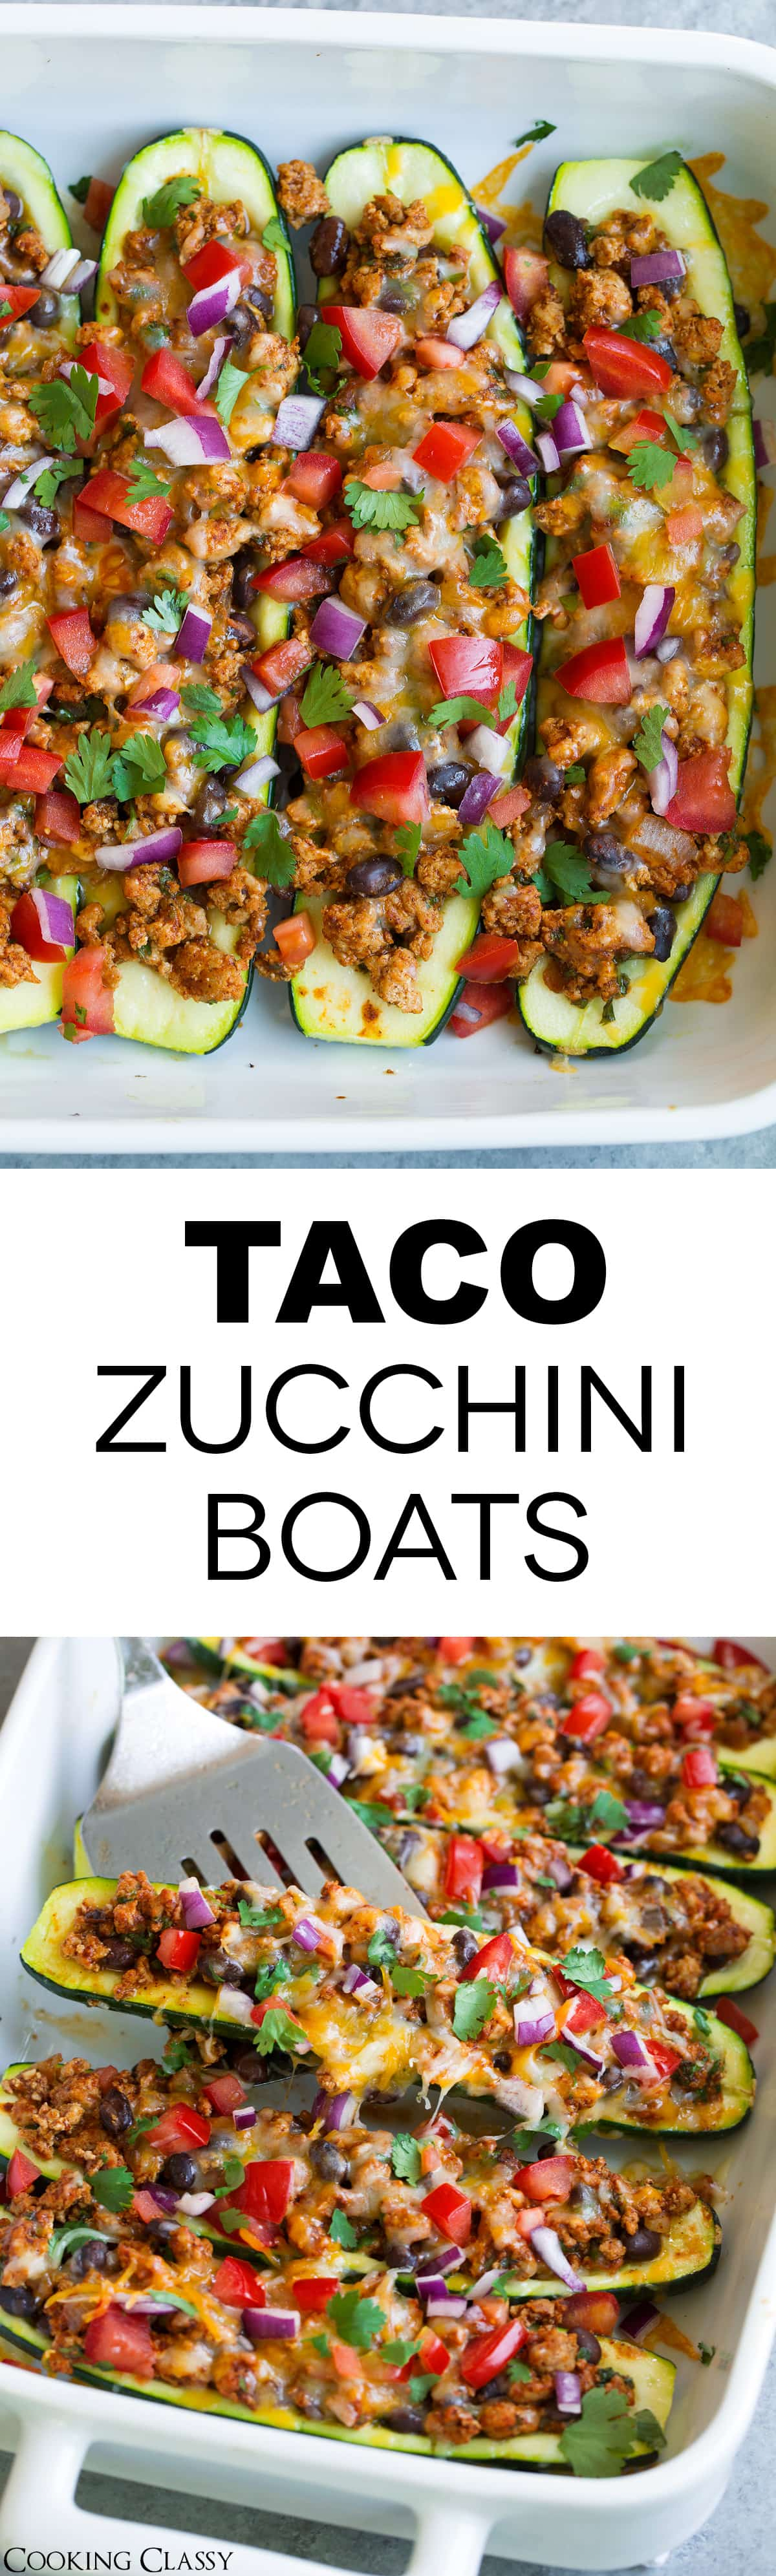 Taco Zucchini Boats - already made these 3 times! They're jam packed with flavor, they're perfectly filling, and have less carbs than the traditional flour or corn tortilla tacos. #zucchini #recipe #summer #zucchiniboats #tacos